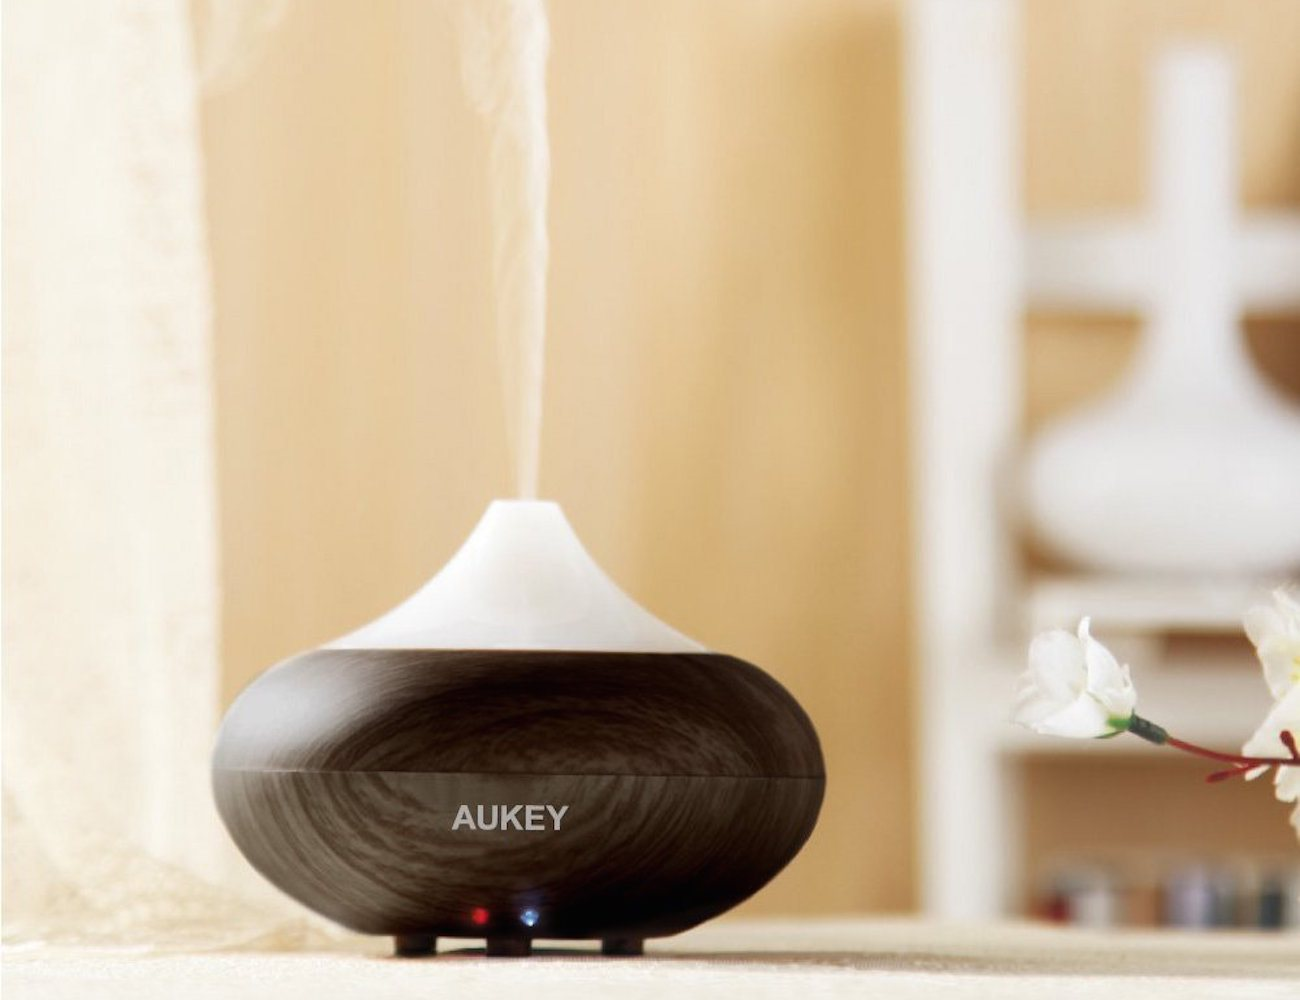 #AF1C25 Aukey Electric Aromatherapy Essential Oil Diffuser Best 3783 Home Diffusers For Essential Oils photos with 1300x1000 px on helpvideos.info - Air Conditioners, Air Coolers and more